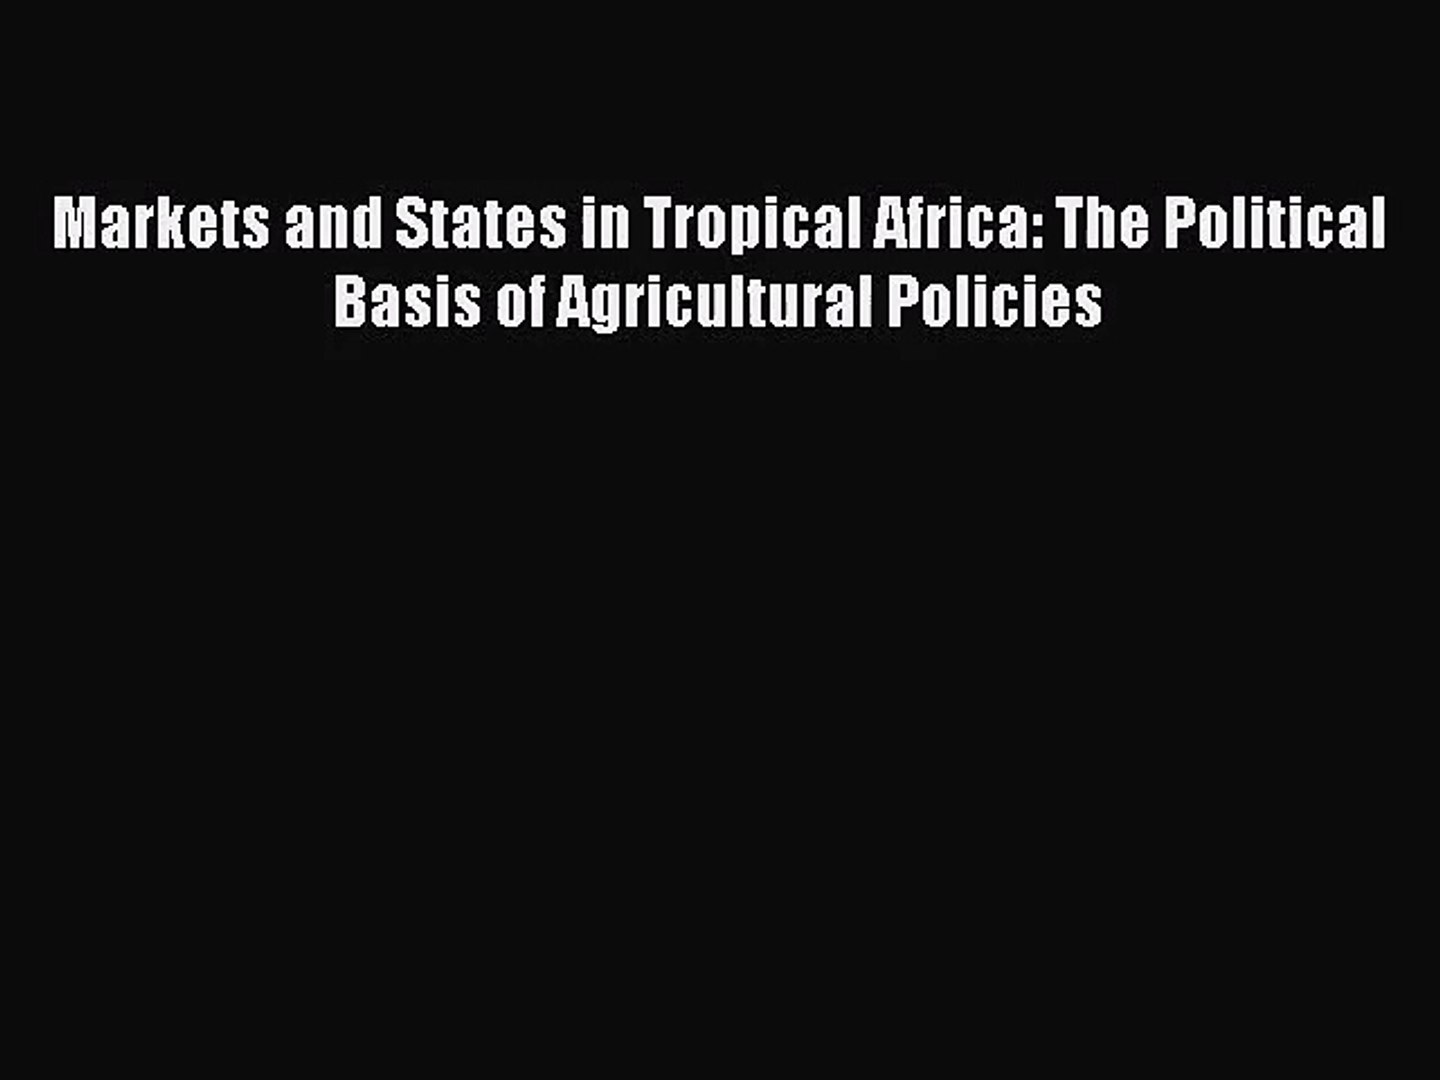 [PDF Download] Markets and States in Tropical Africa: The Political Basis of Agricultural Policies